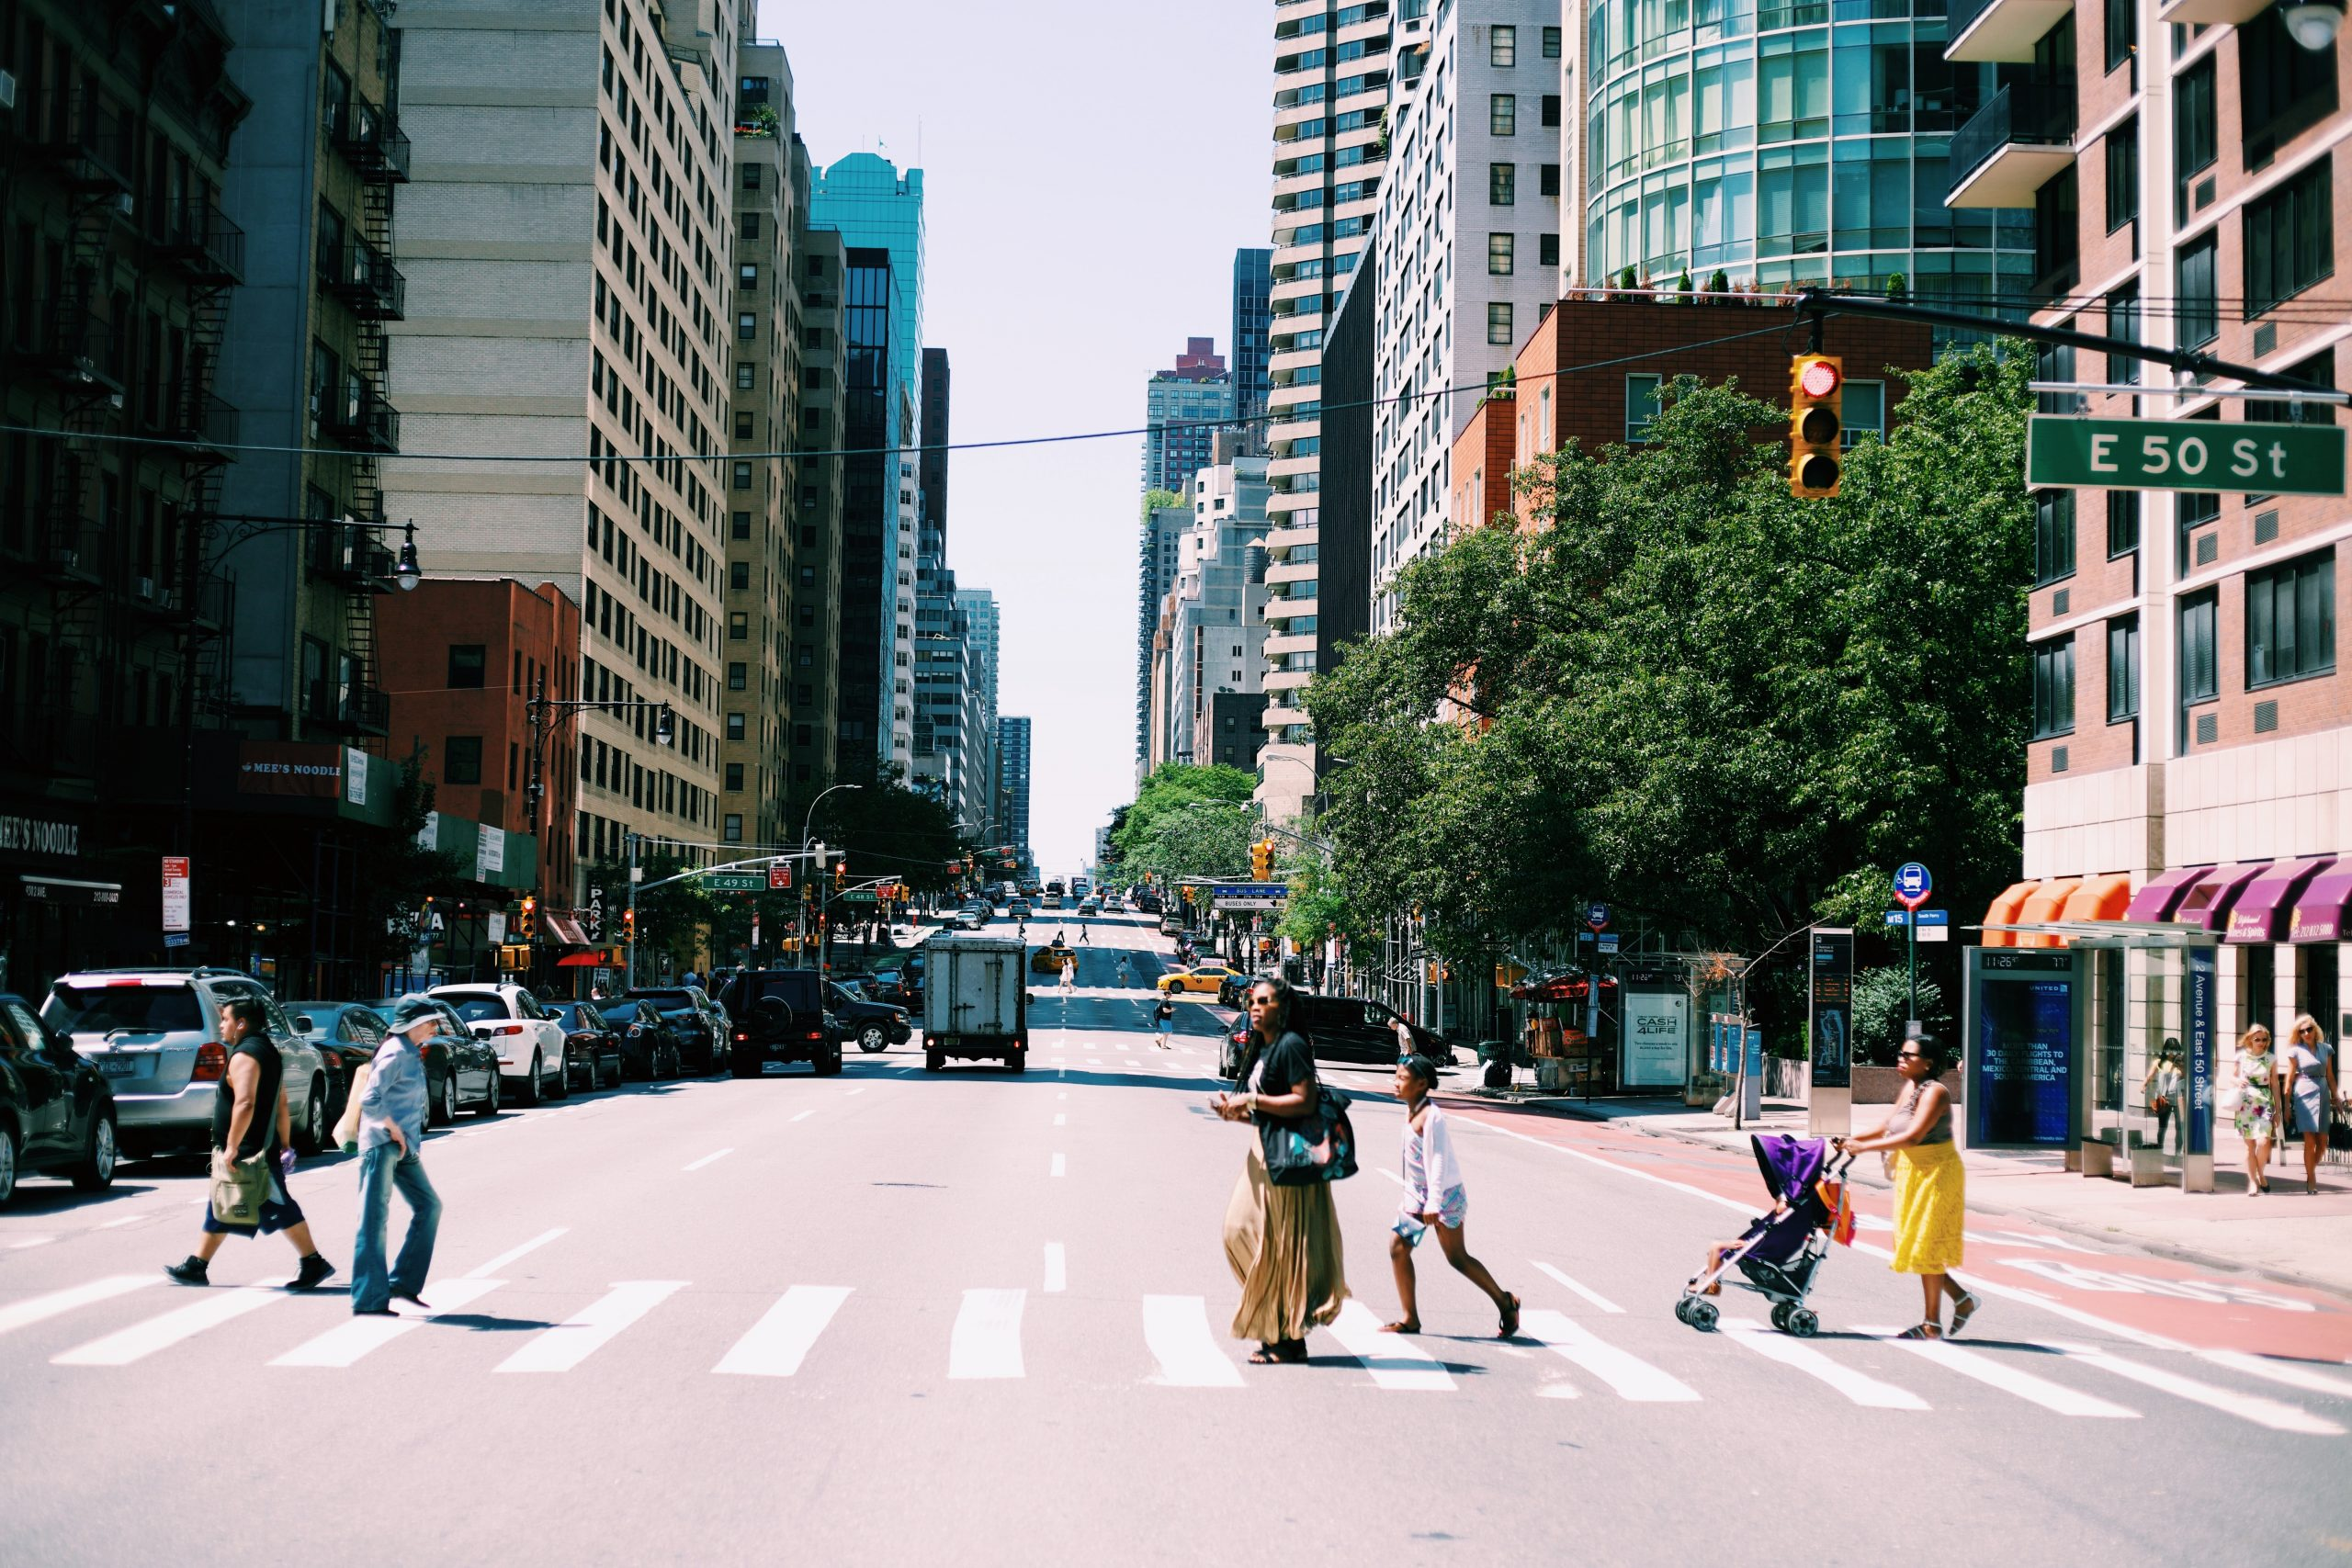 People cross the street in a crosswalk in a downtown area with tall buildings